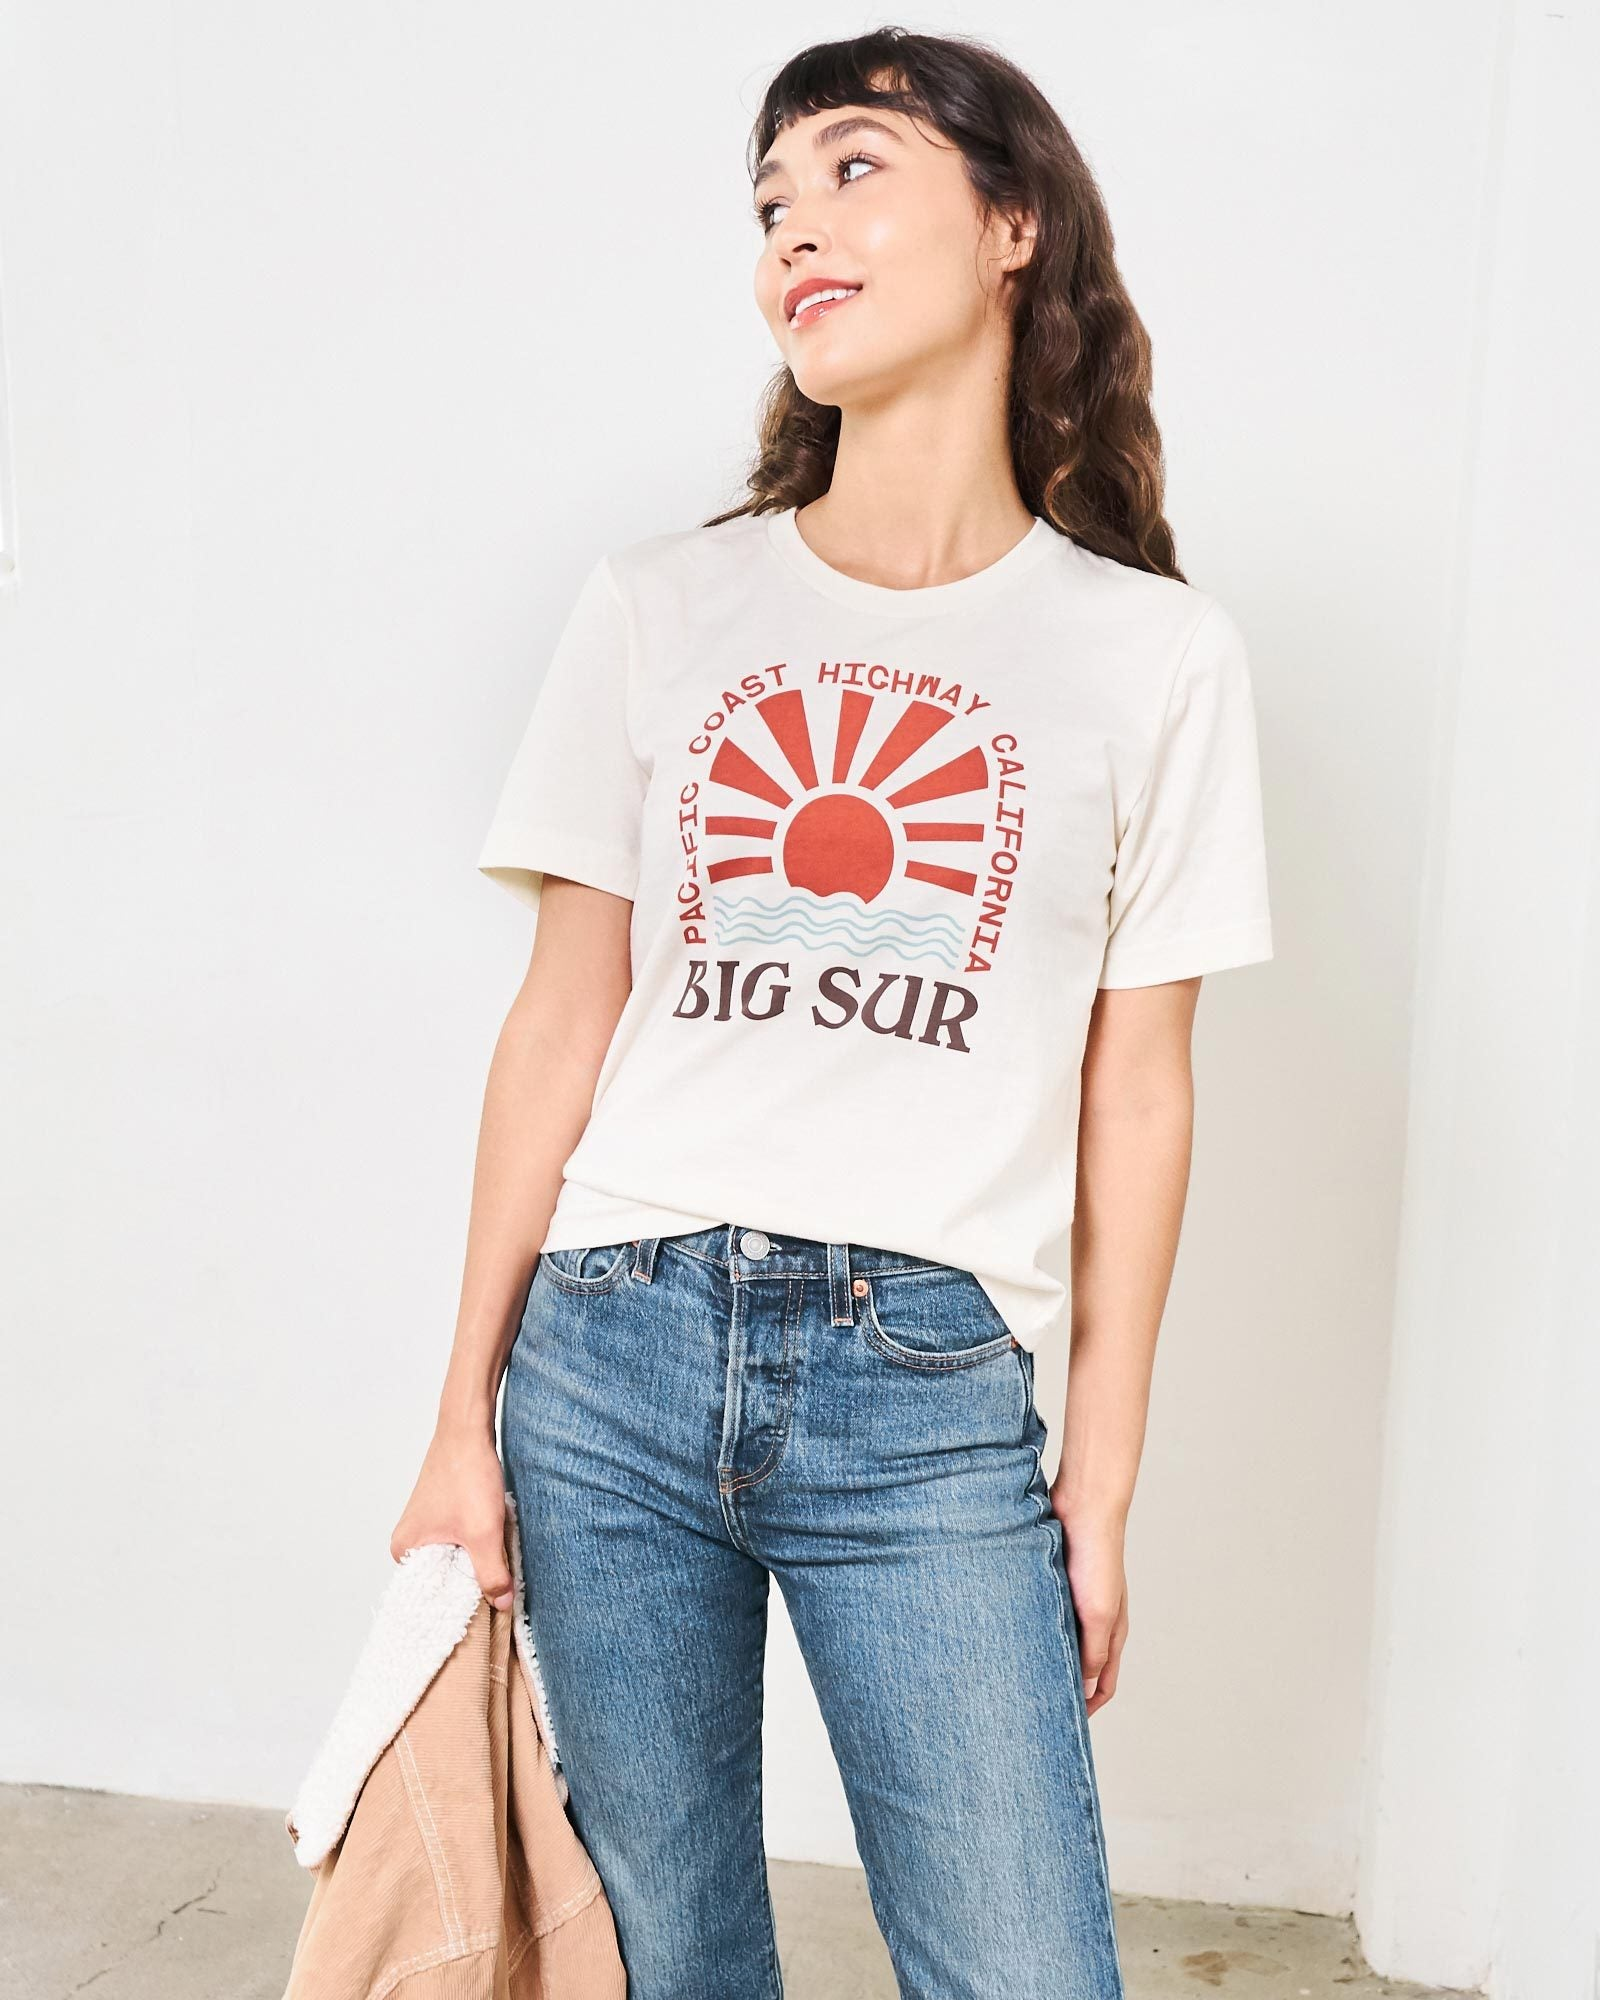 Big Sur PCH Relaxed Women's Tee | Parks Project | National Parks Shirts for Women